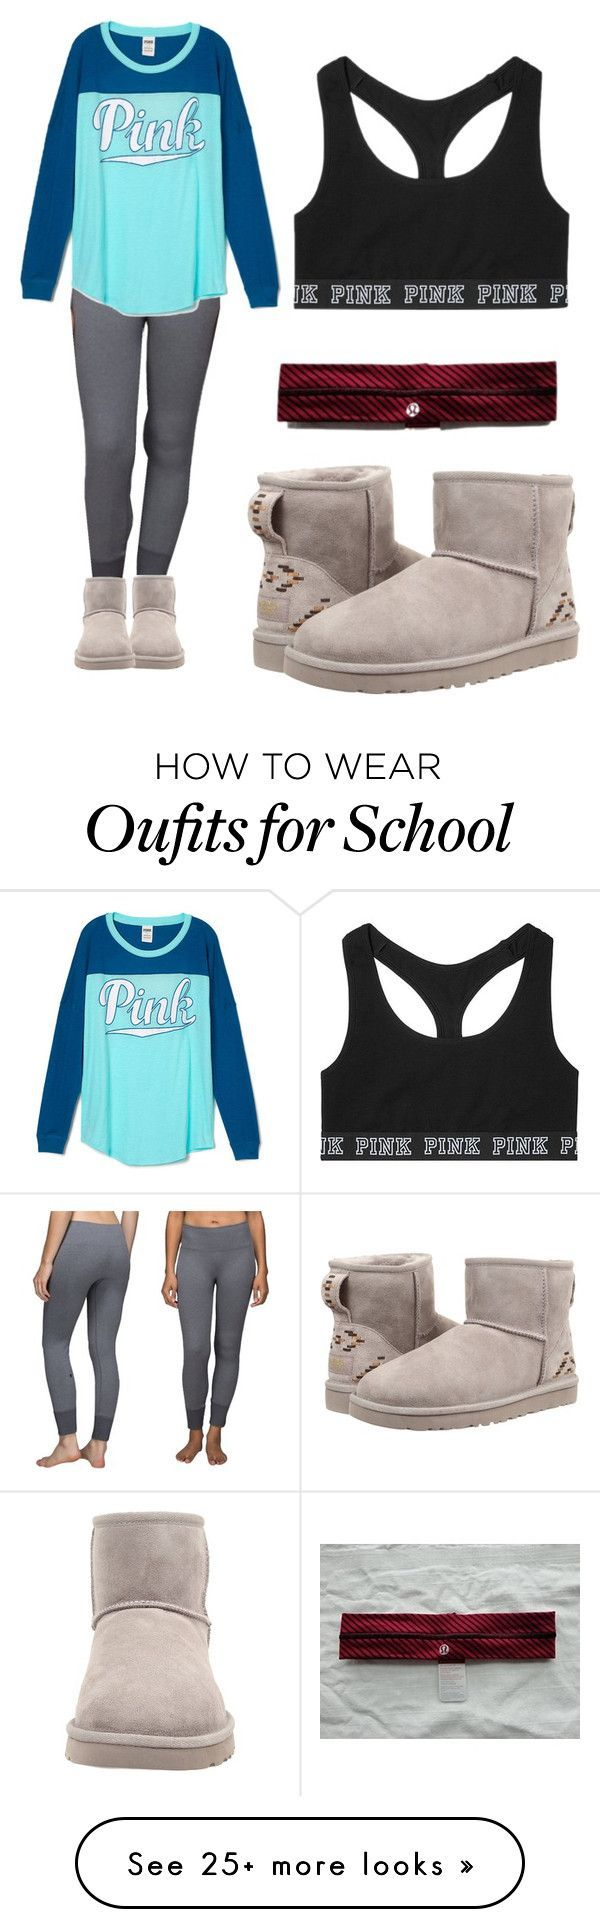 """School"" by lmmtwin on Polyvore featuring lululemon, UGG Australia and Victoria's Secret"